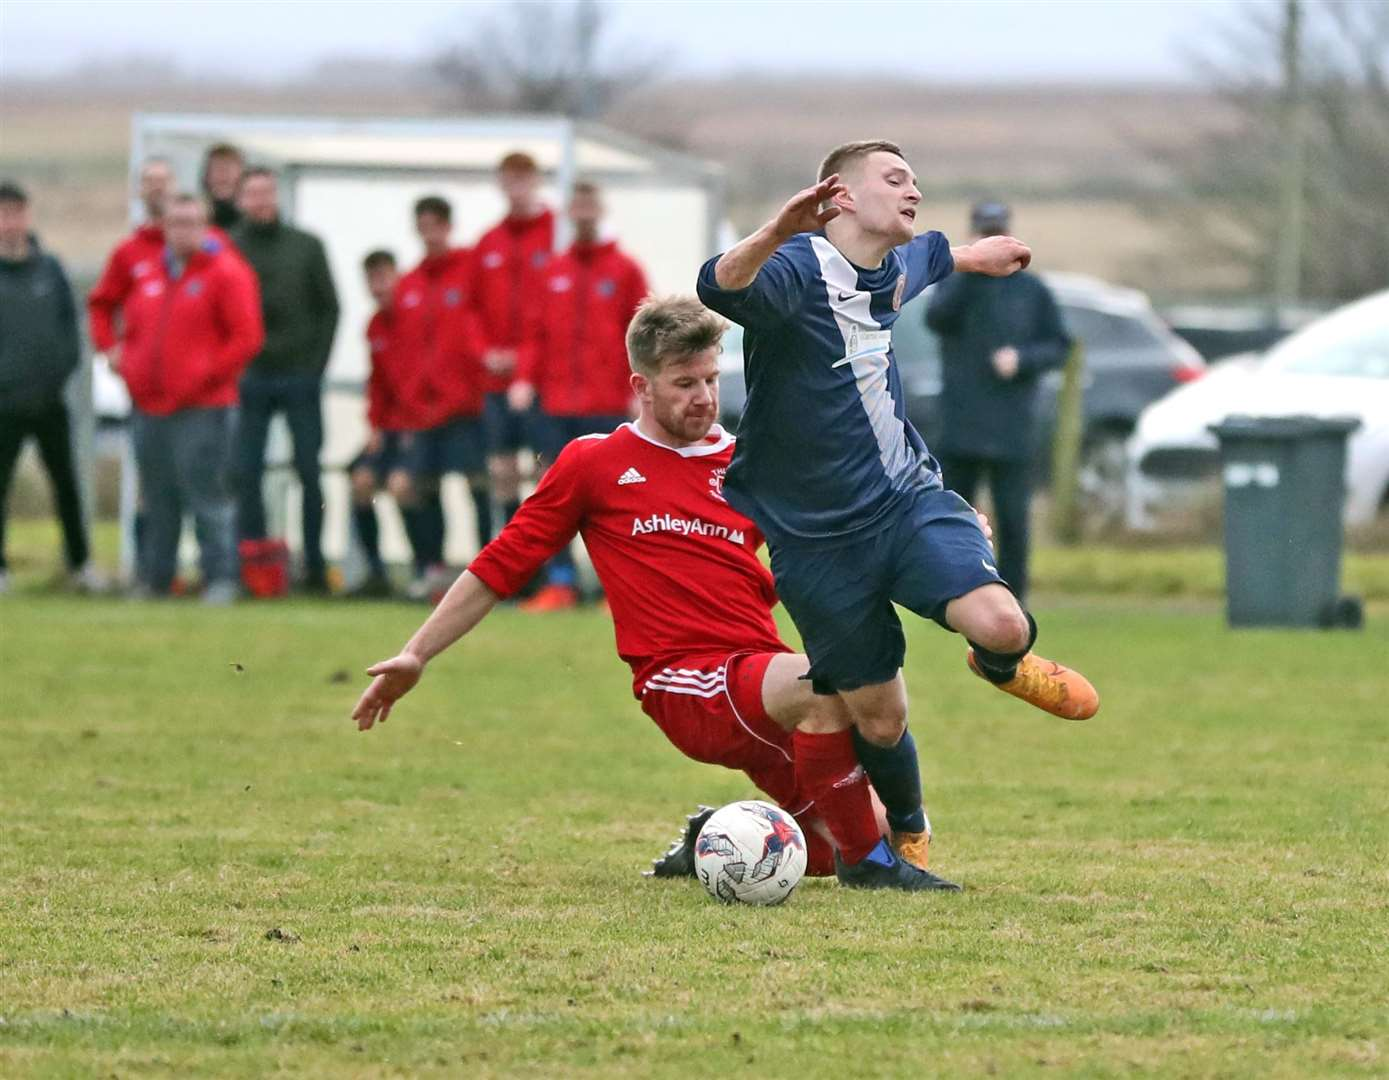 Michael Petrie was booked for this foul on Korbyn Cameron and was sent off as it was his second yellow. Picture: James Gunn